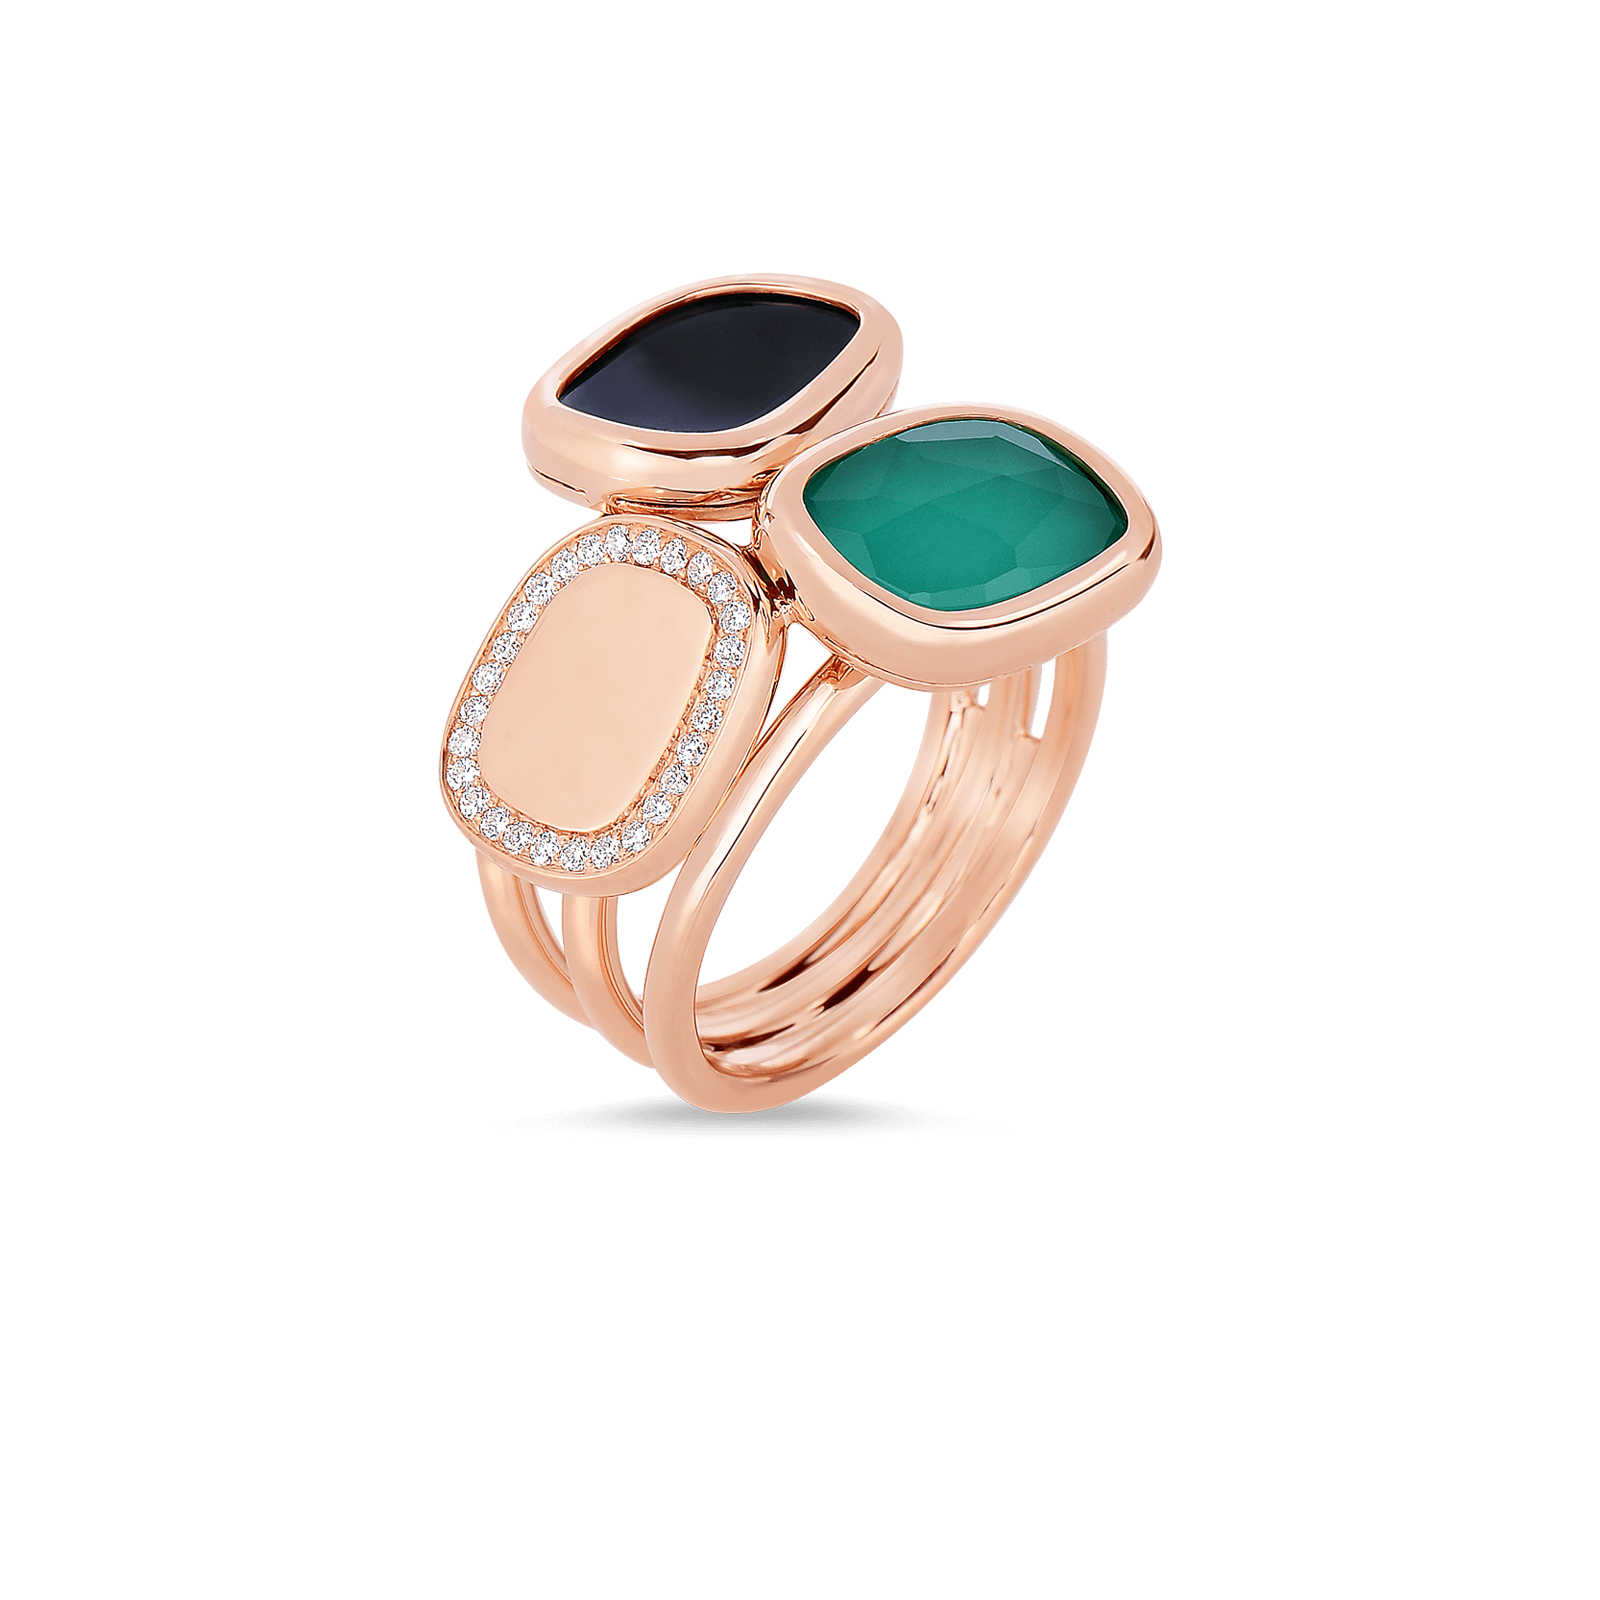 Roberto-Coin-Black-Jade-18K-Rose-Gold-Ring-with-Black-Jade-and-Agate-and-Diamonds-888624AX70JX_SIDE